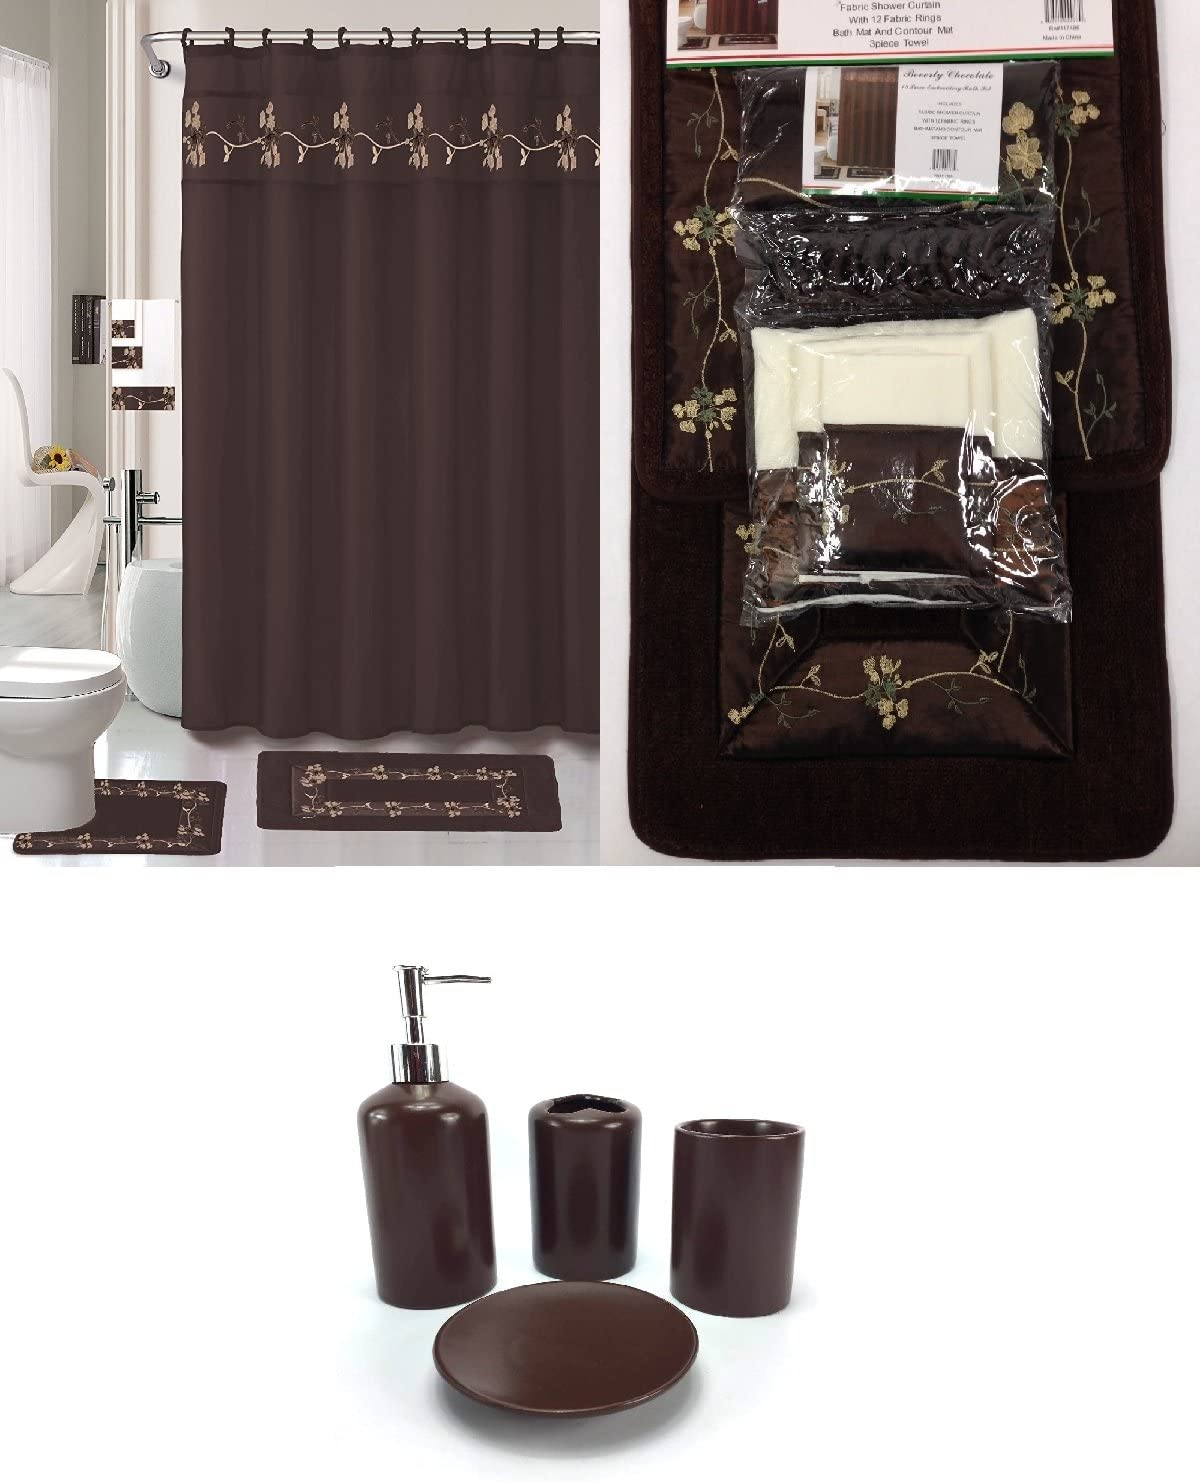 9 Piece Bath Accessory Set Beverly Chocolate Brown Bathroom Rug Set +  Shower Curtain & Accessories